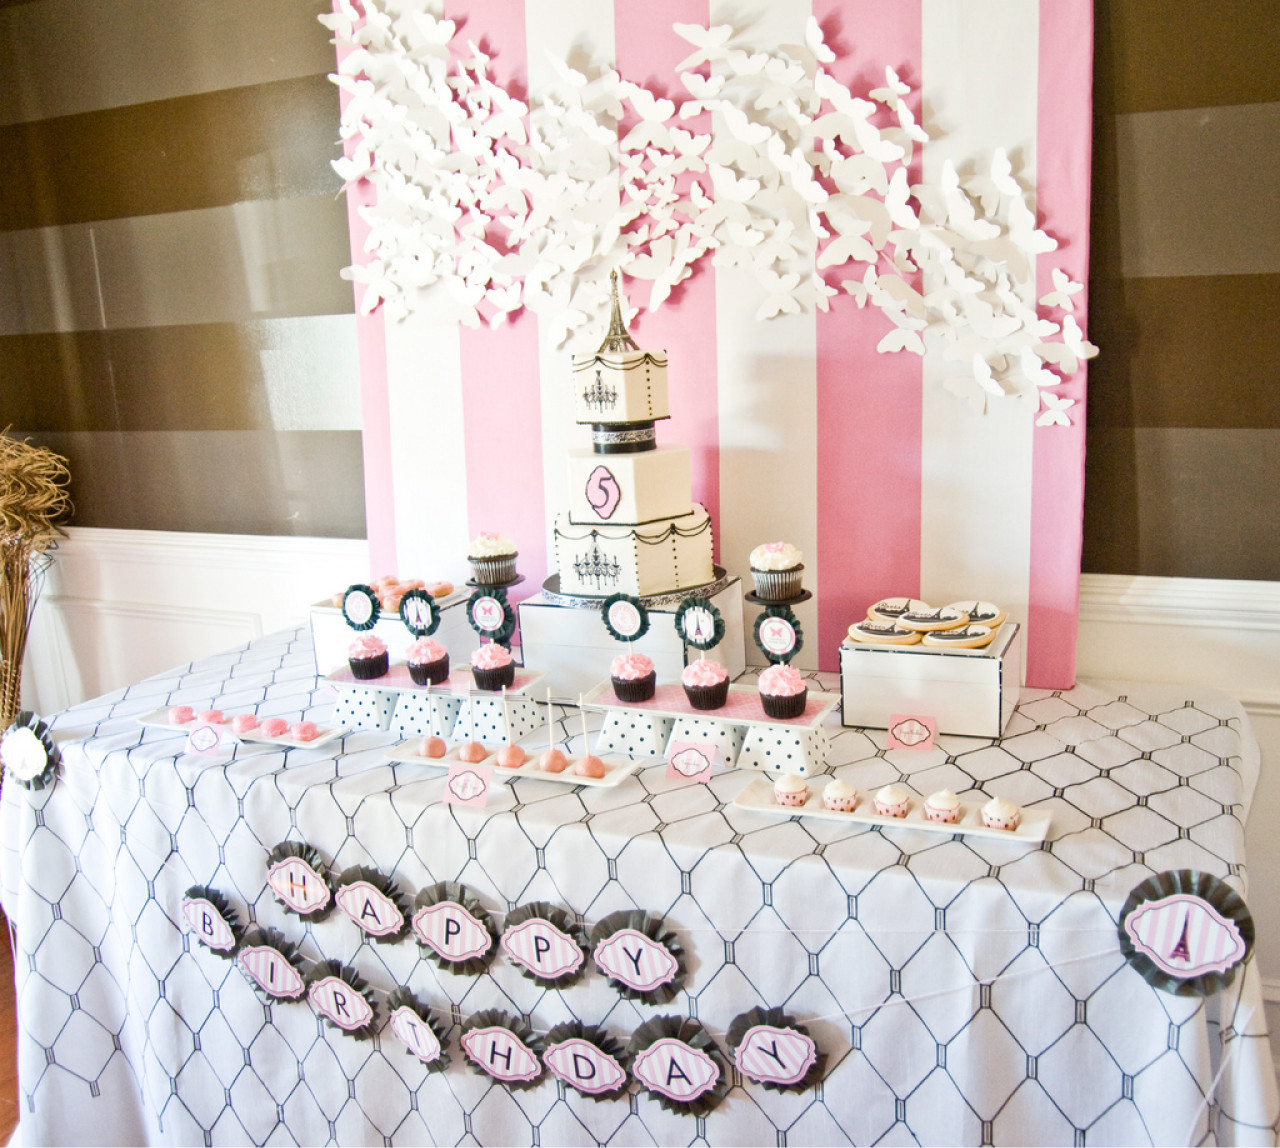 Best ideas about Birthday Party Ideas For Girls . Save or Pin Girl Birthday Party Themes Party Ideas for Girls Now.